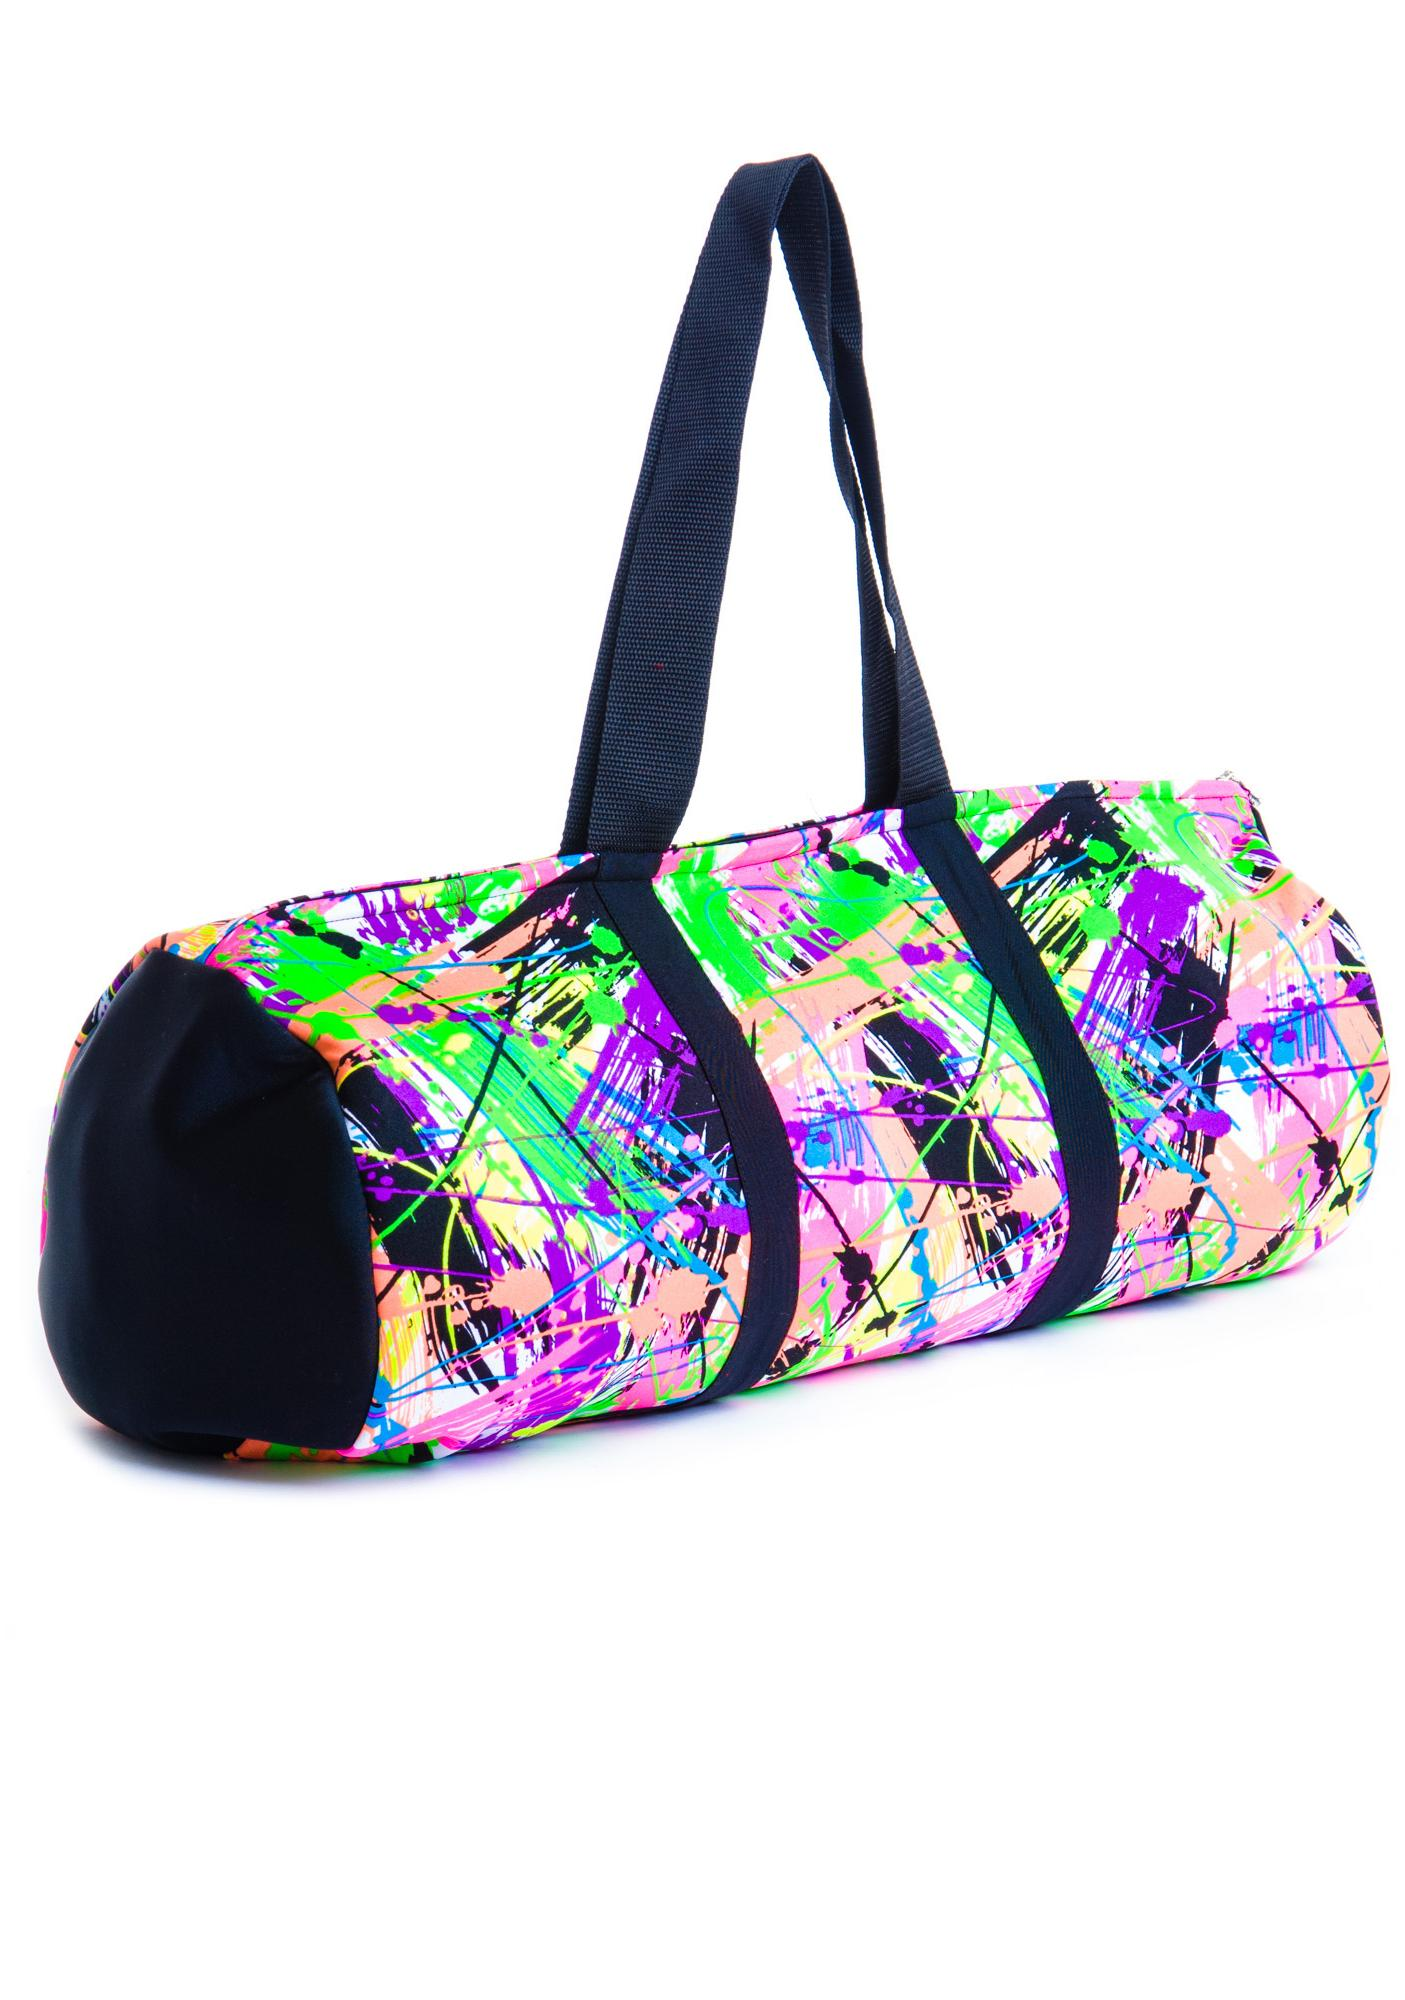 Zara Terez Neon Splatter Dance Bag